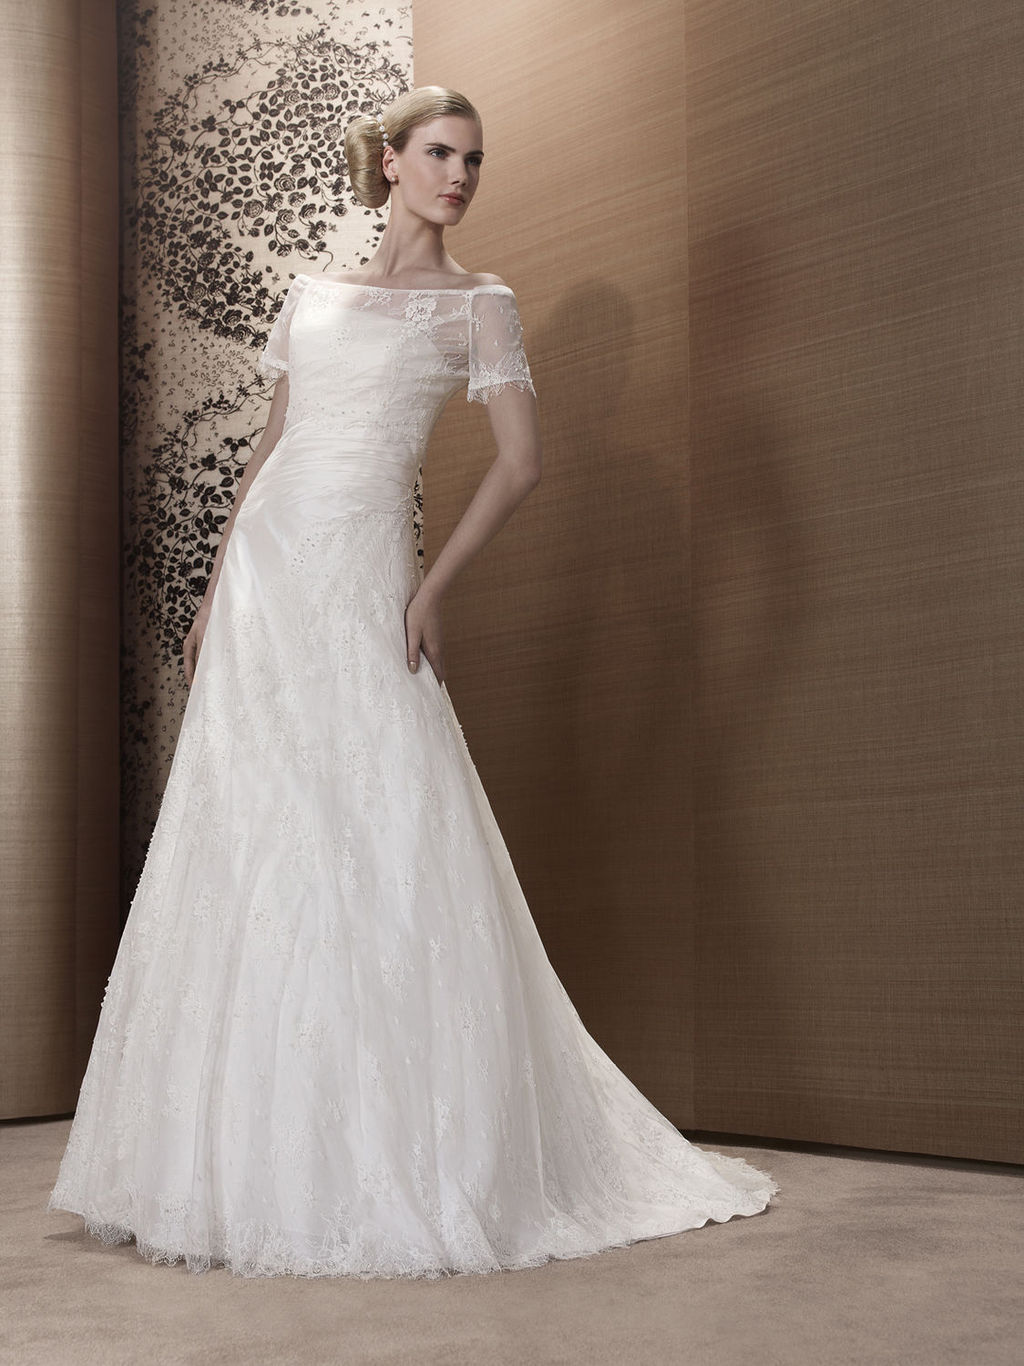 2013-wedding-dress-by-pronuptia-paris-kh09.full